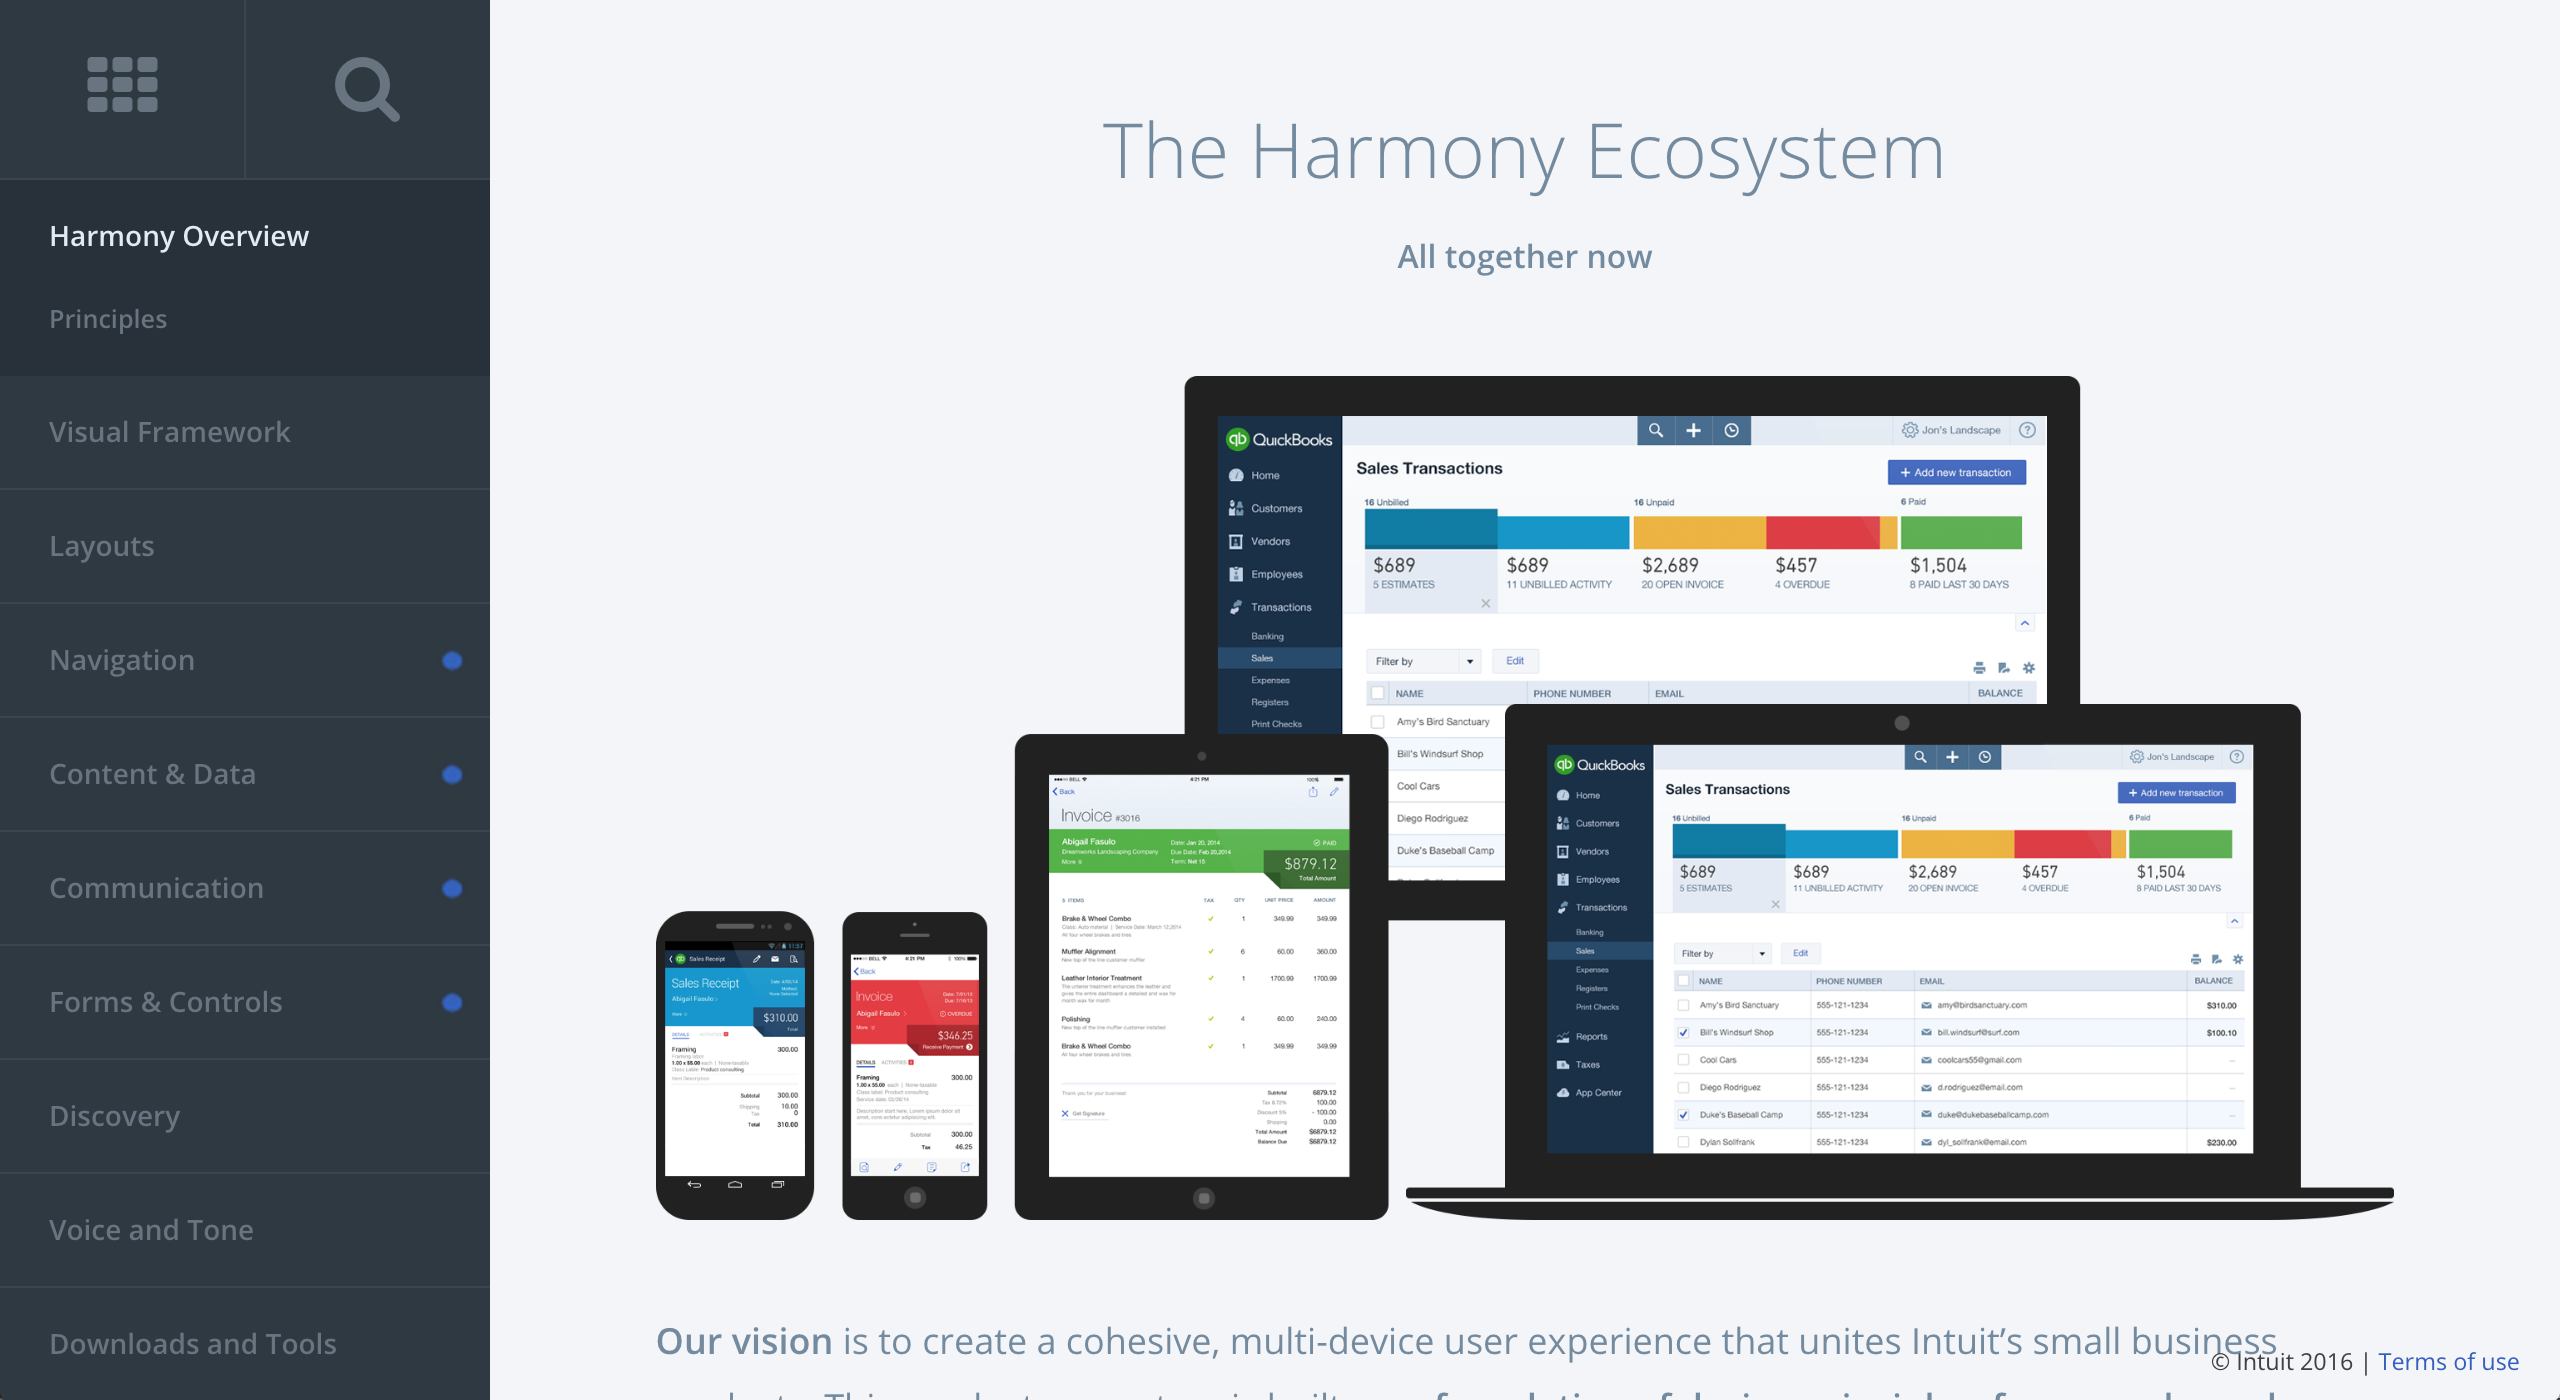 Intuit's Harmony design system includes a pattern library, design principles, voice and tone, marketing guidelines, and more. Housing this helpful documentation under one roof helps increase its visibility and effectiveness.